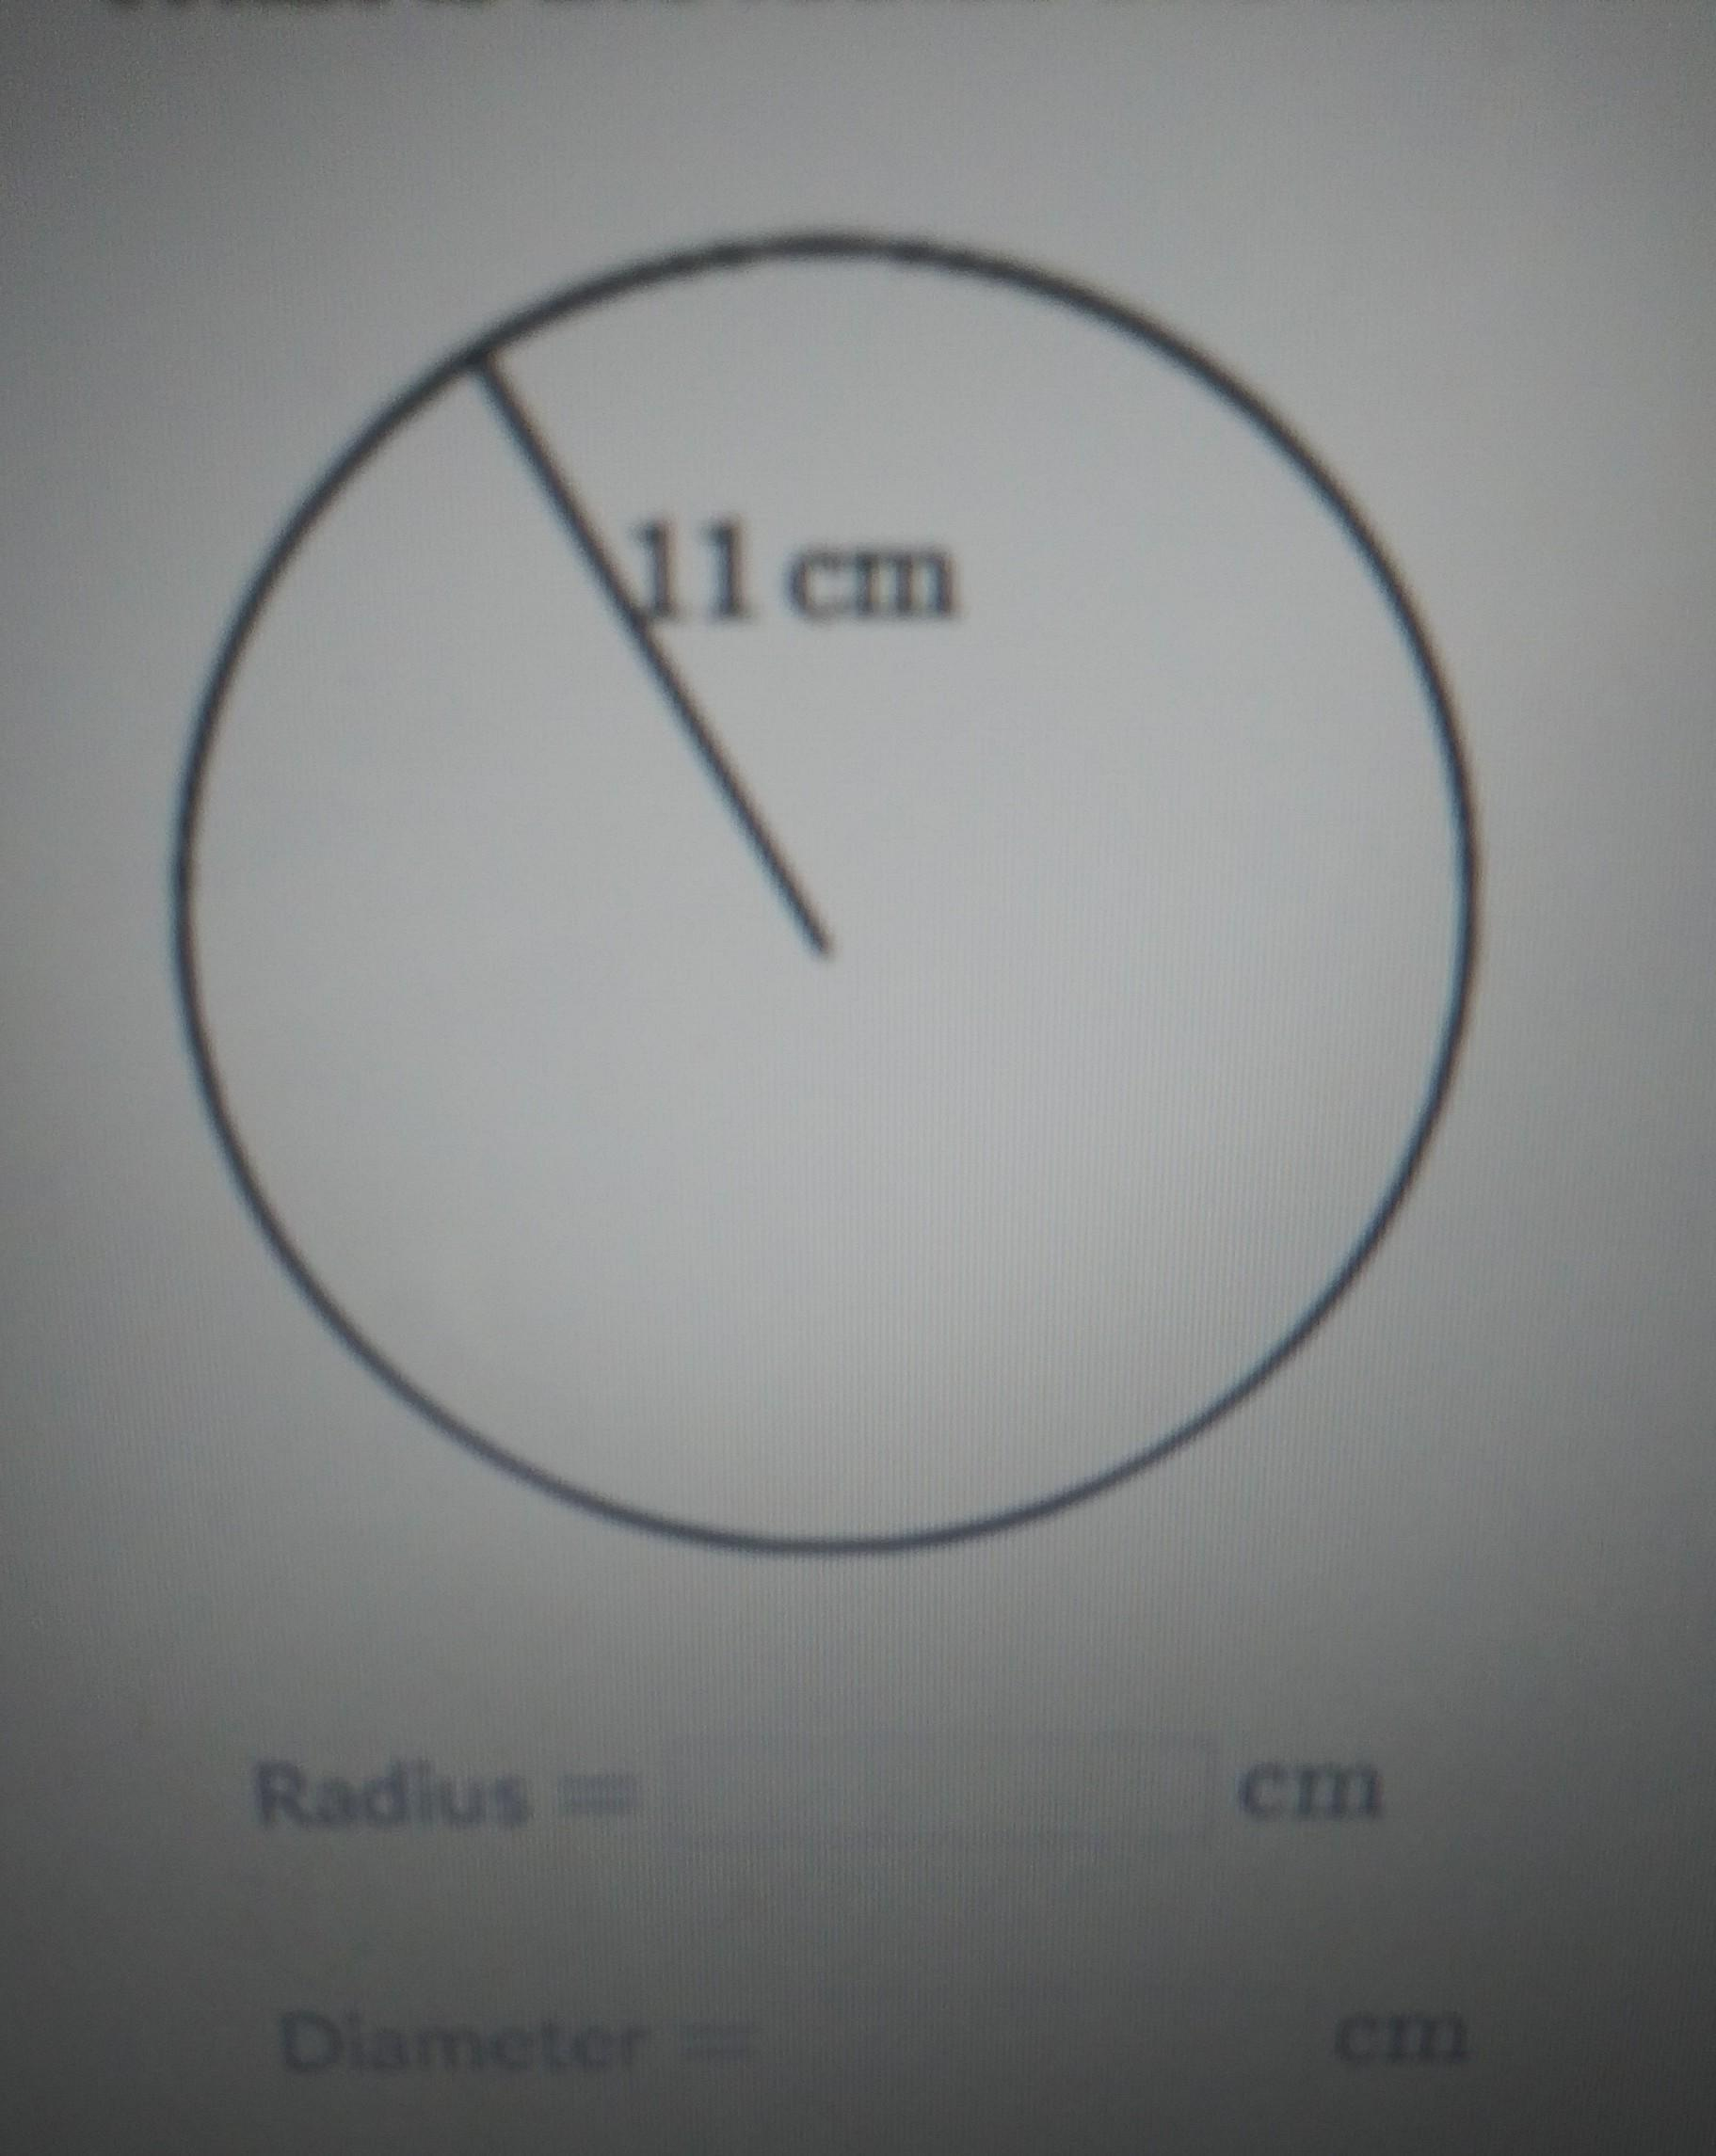 What Is The Radius And Diameter Of The Following Circle